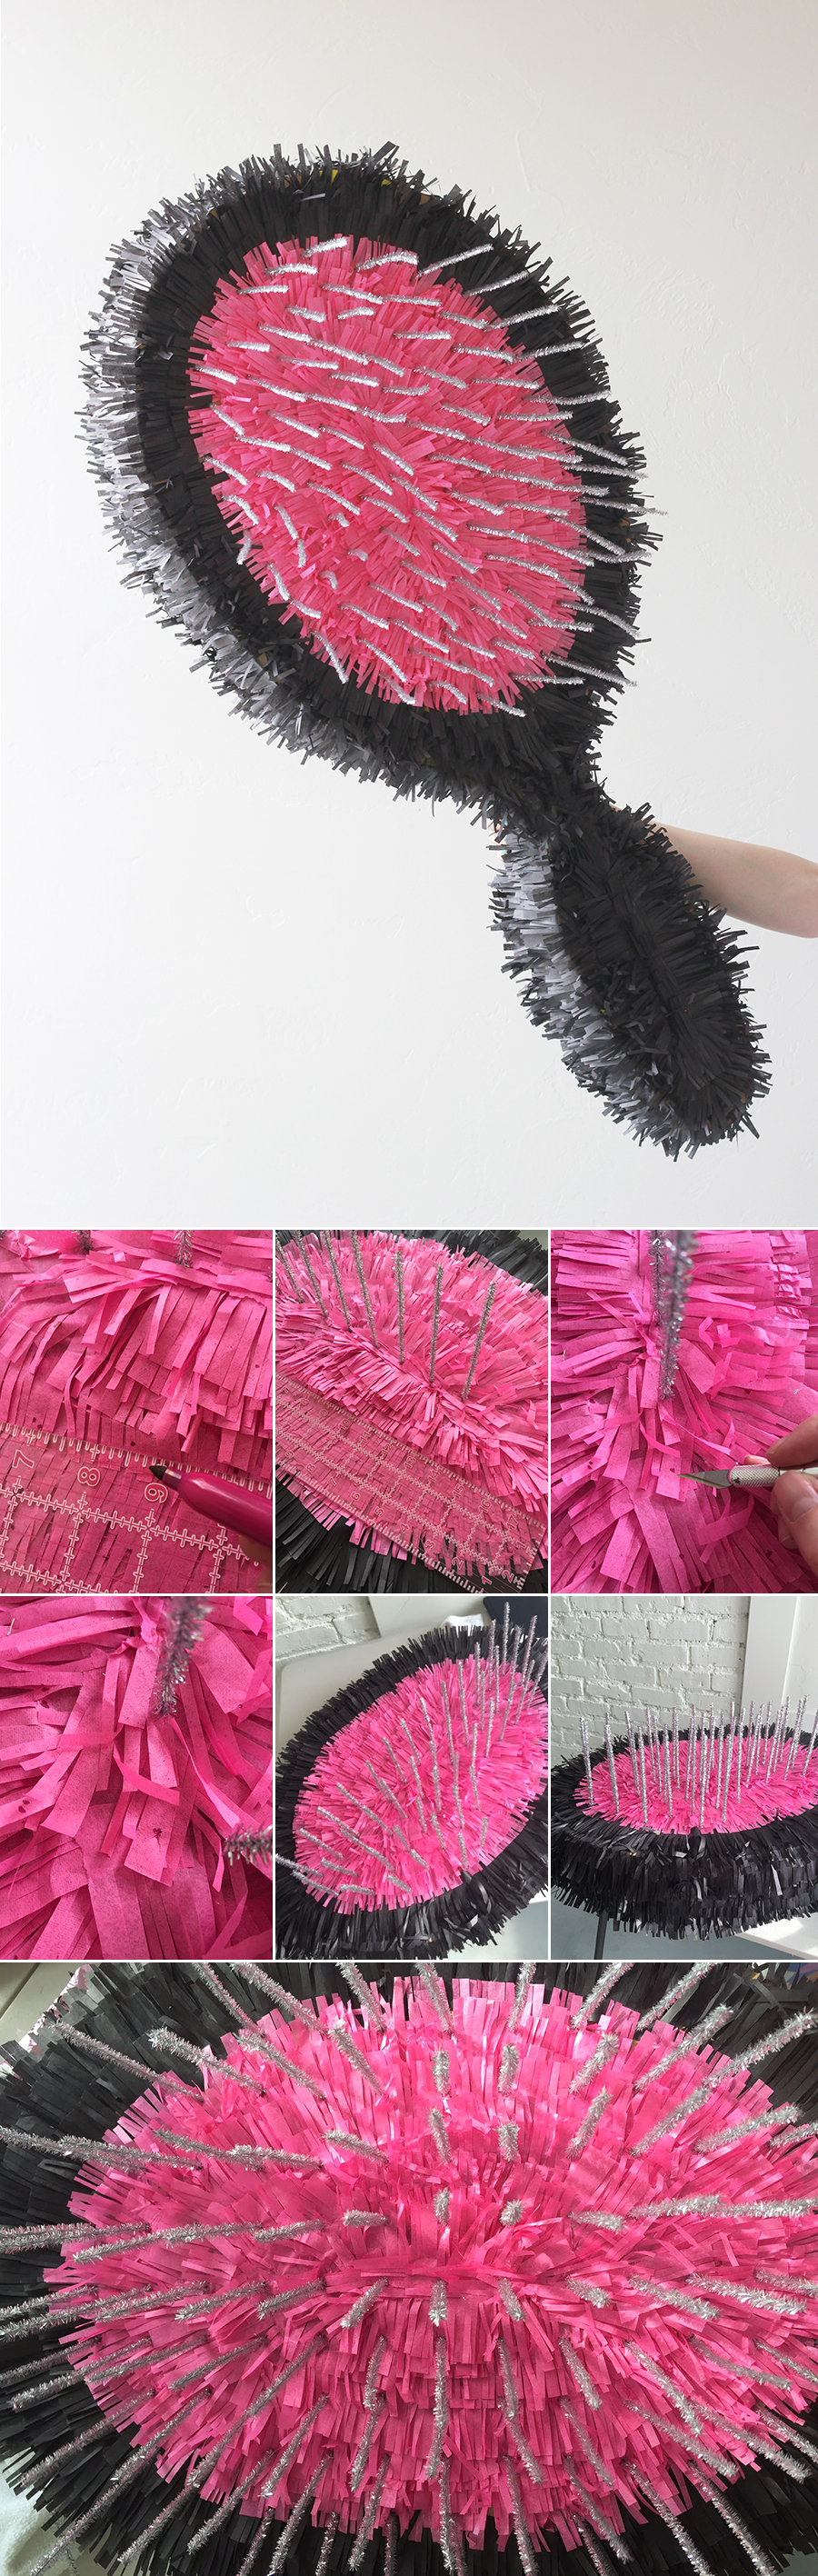 hair brush pinata instructions